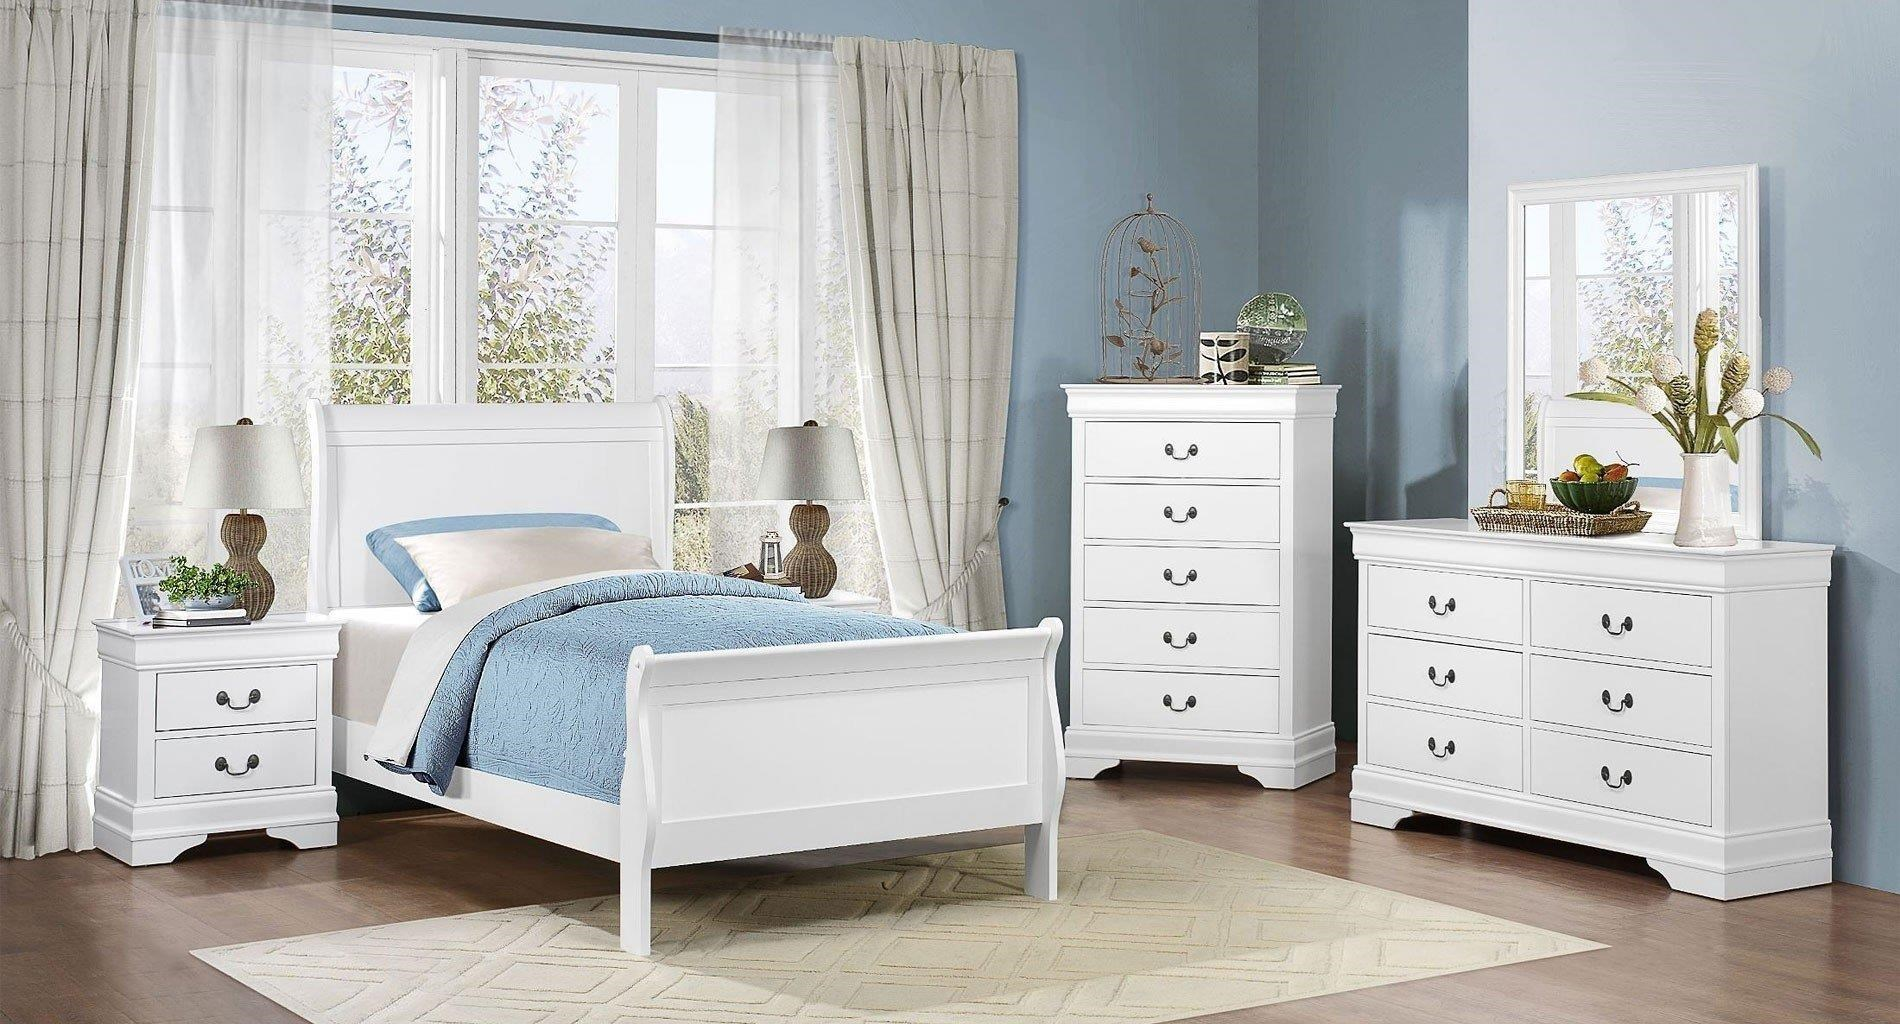 Mayville Full White Bed Dresser Mirror Nightstand By Homelegance At Great American Home Store